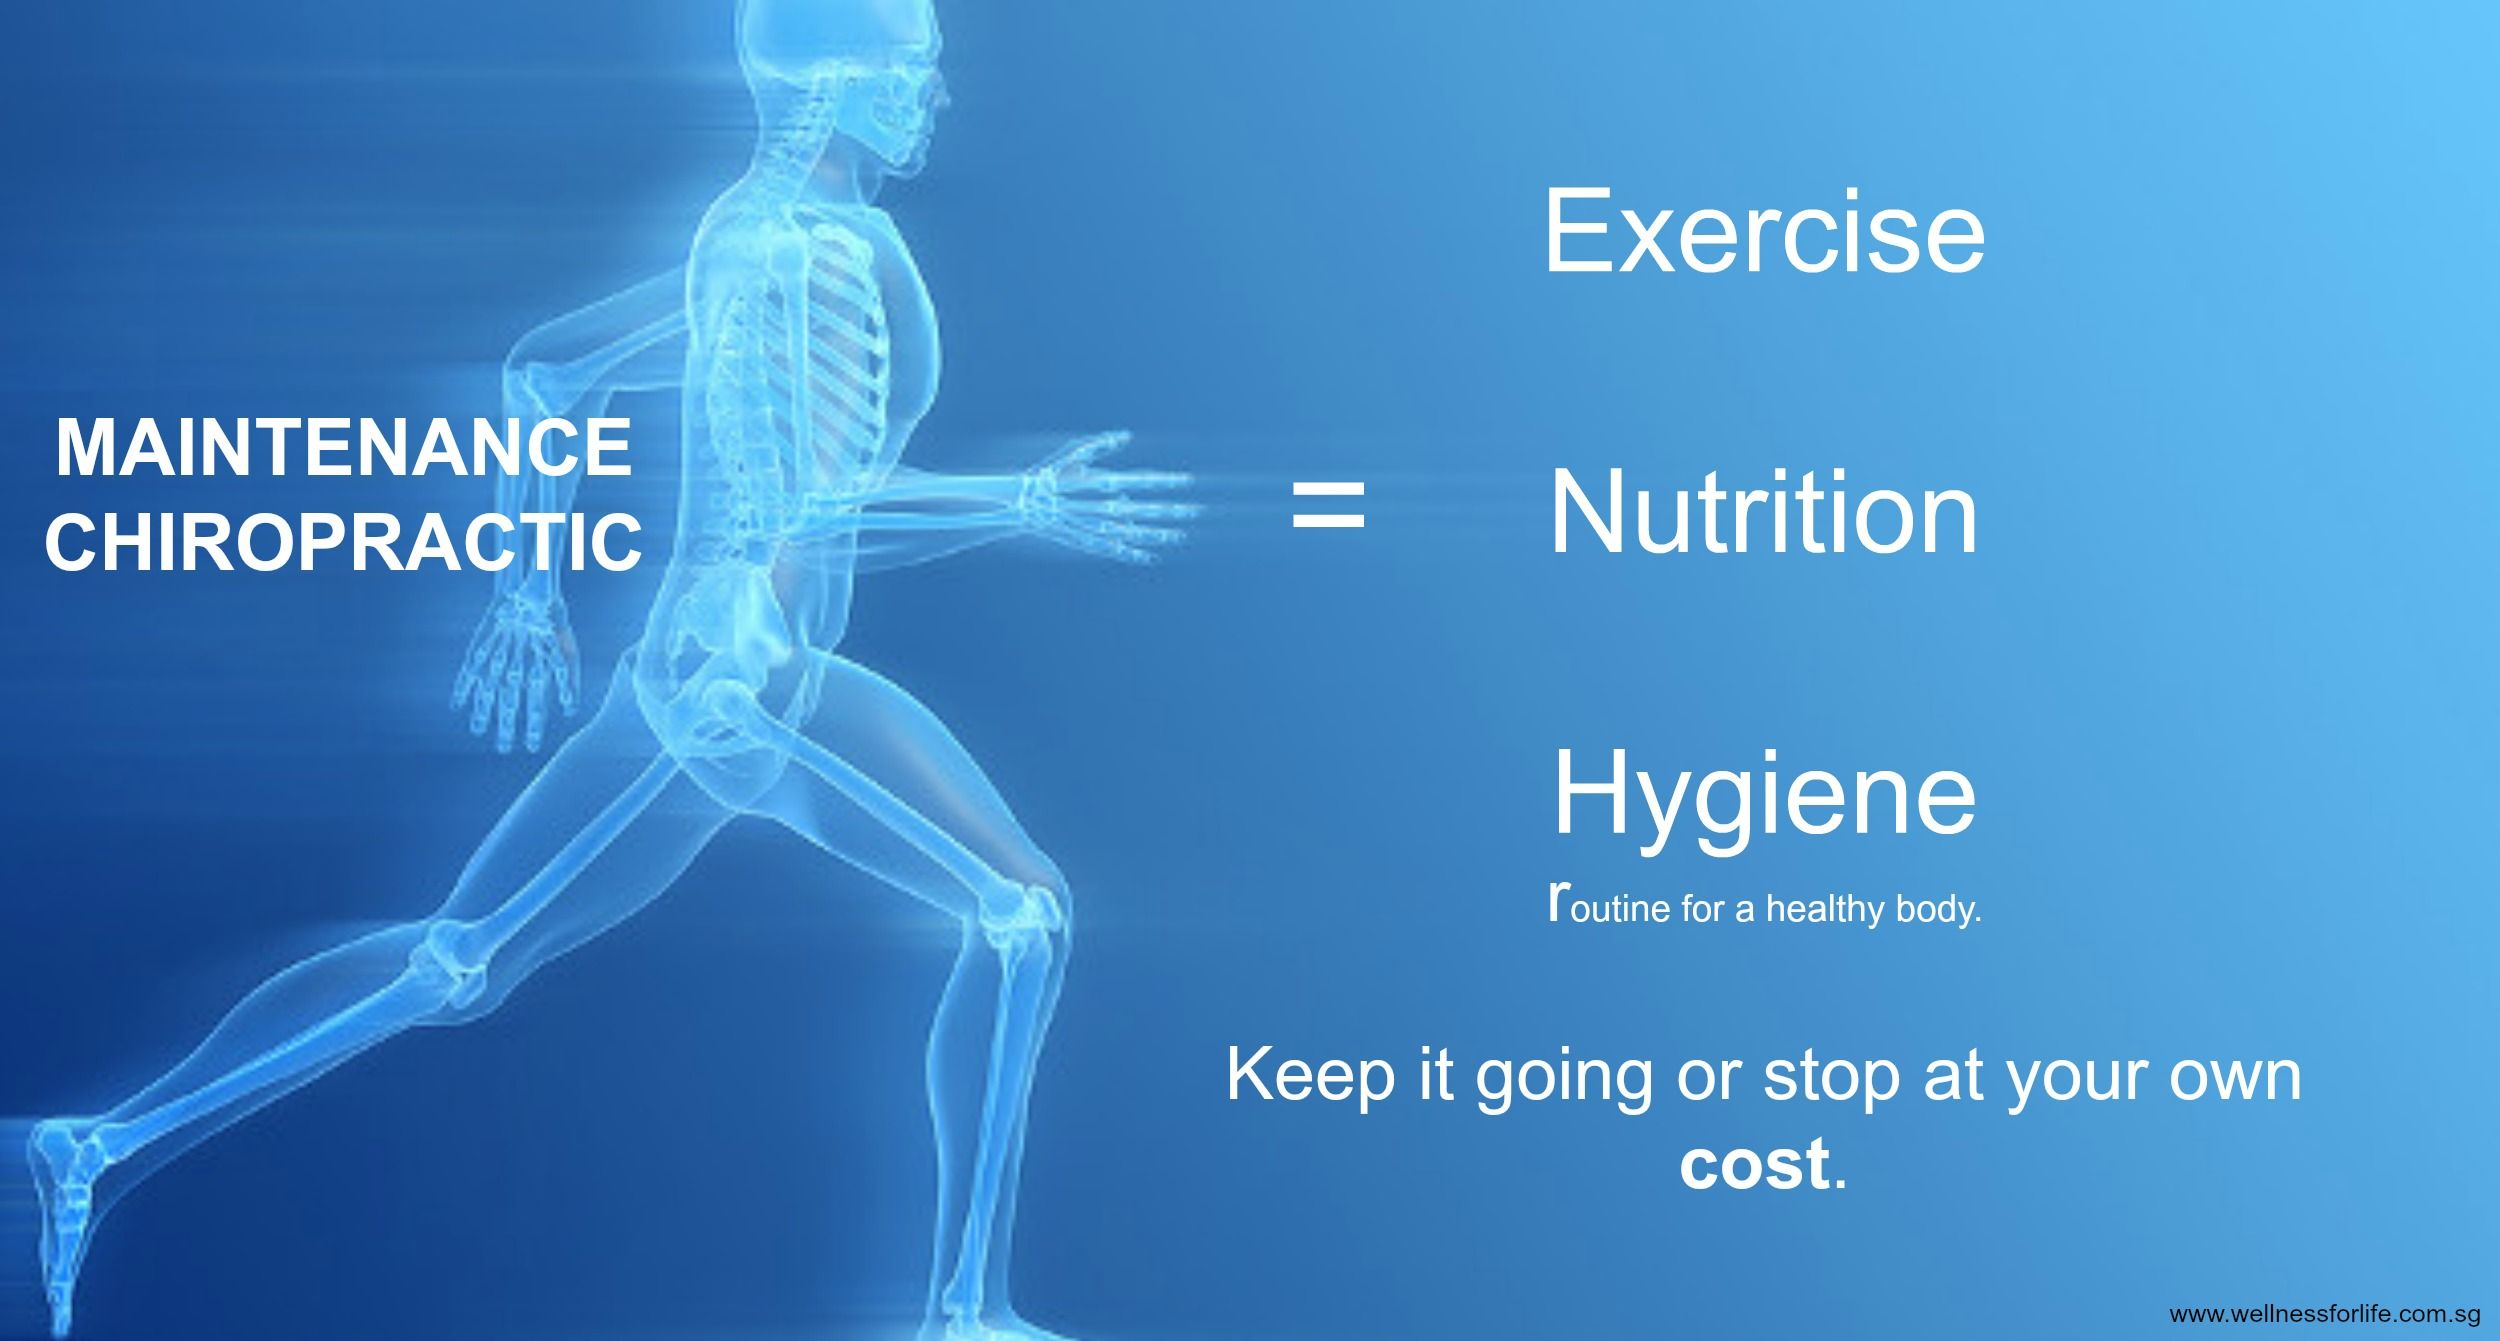 exercise nutrition Xperiencelife Chiropractic care